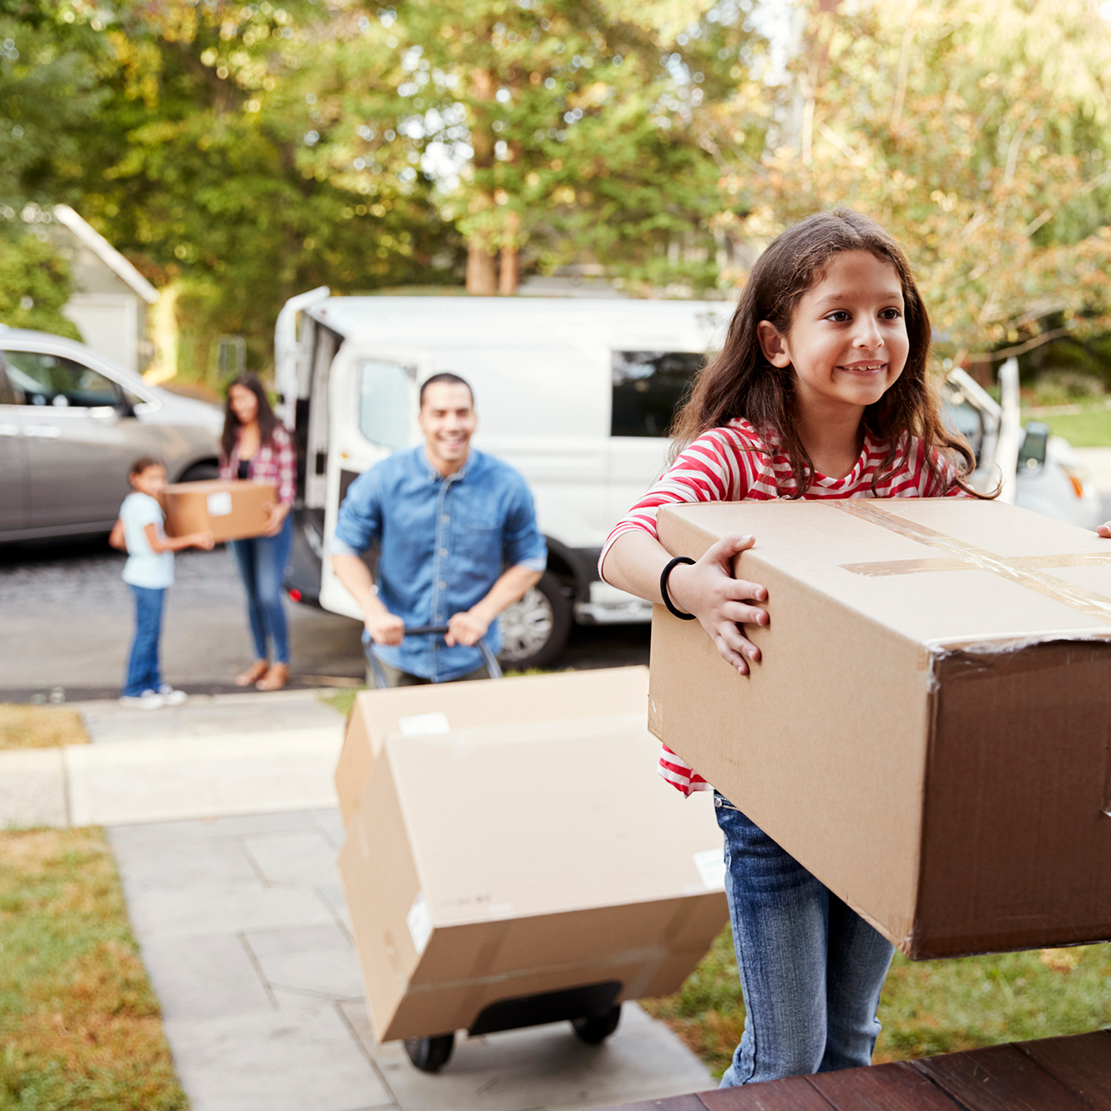 young girl carrying a box into her new home - with the rest of family unloading boxes in the background